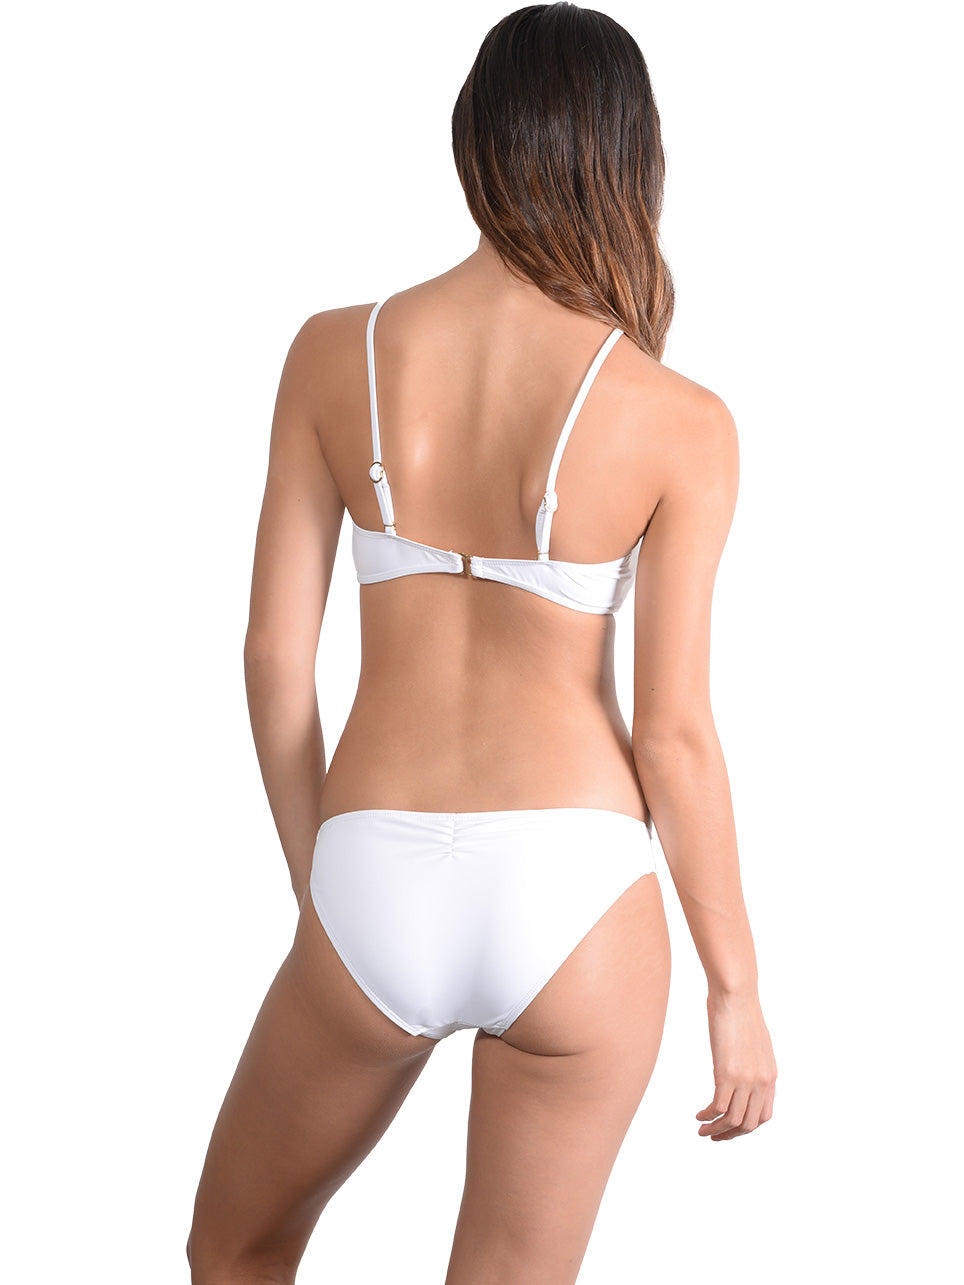 Back view of Seduce Tear Drop Bikini Top in White